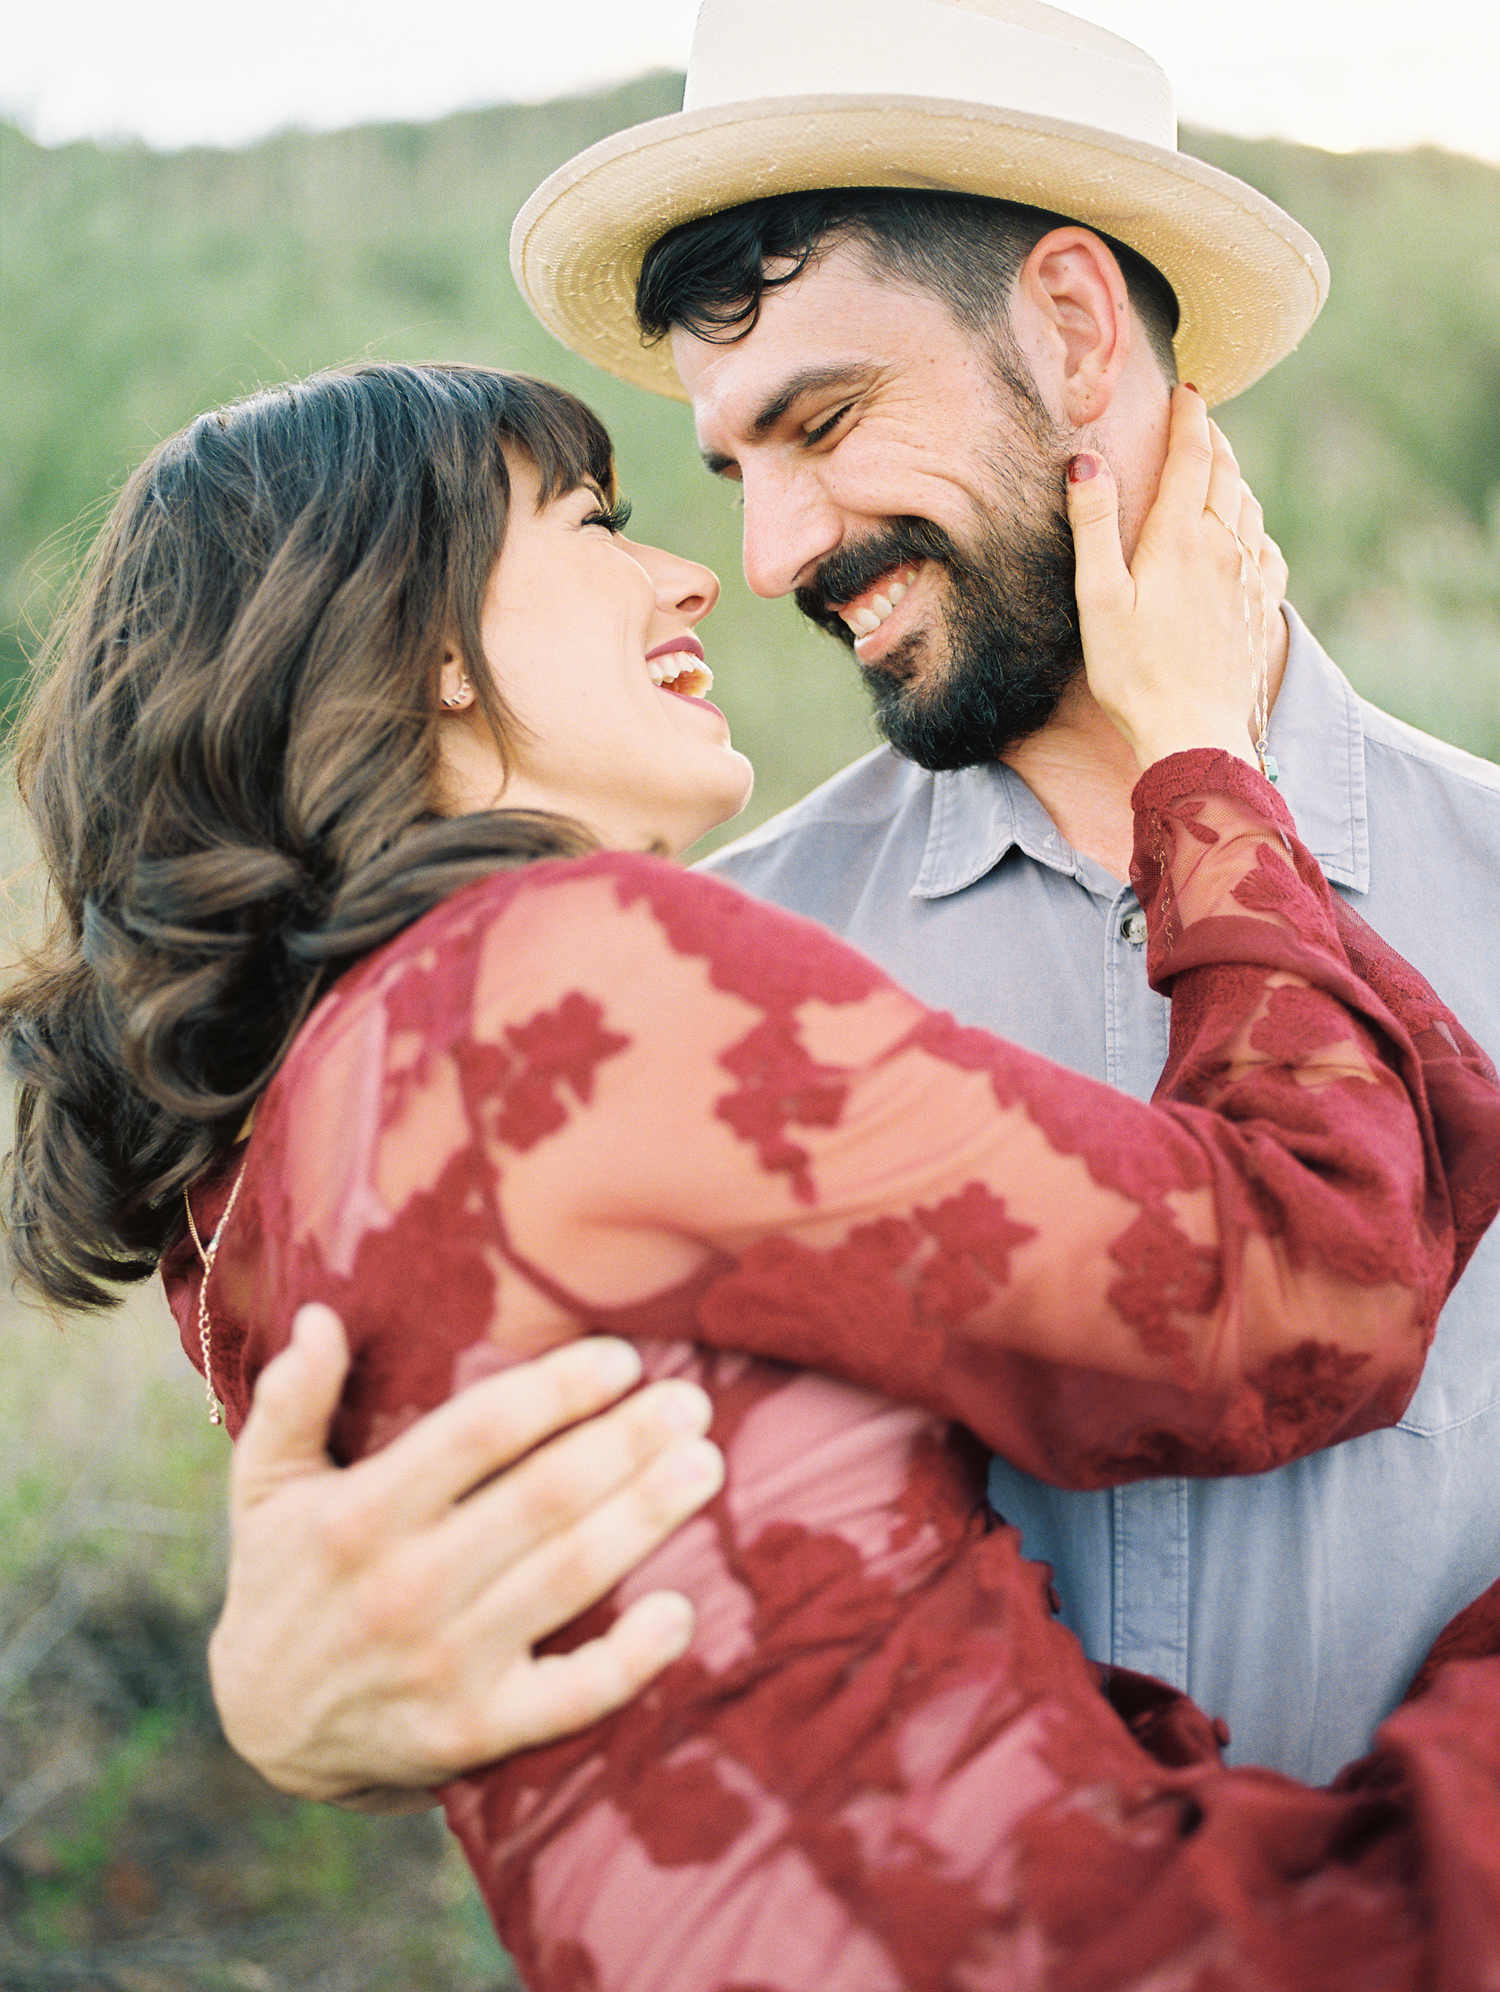 Groom holding bride smiling at each other